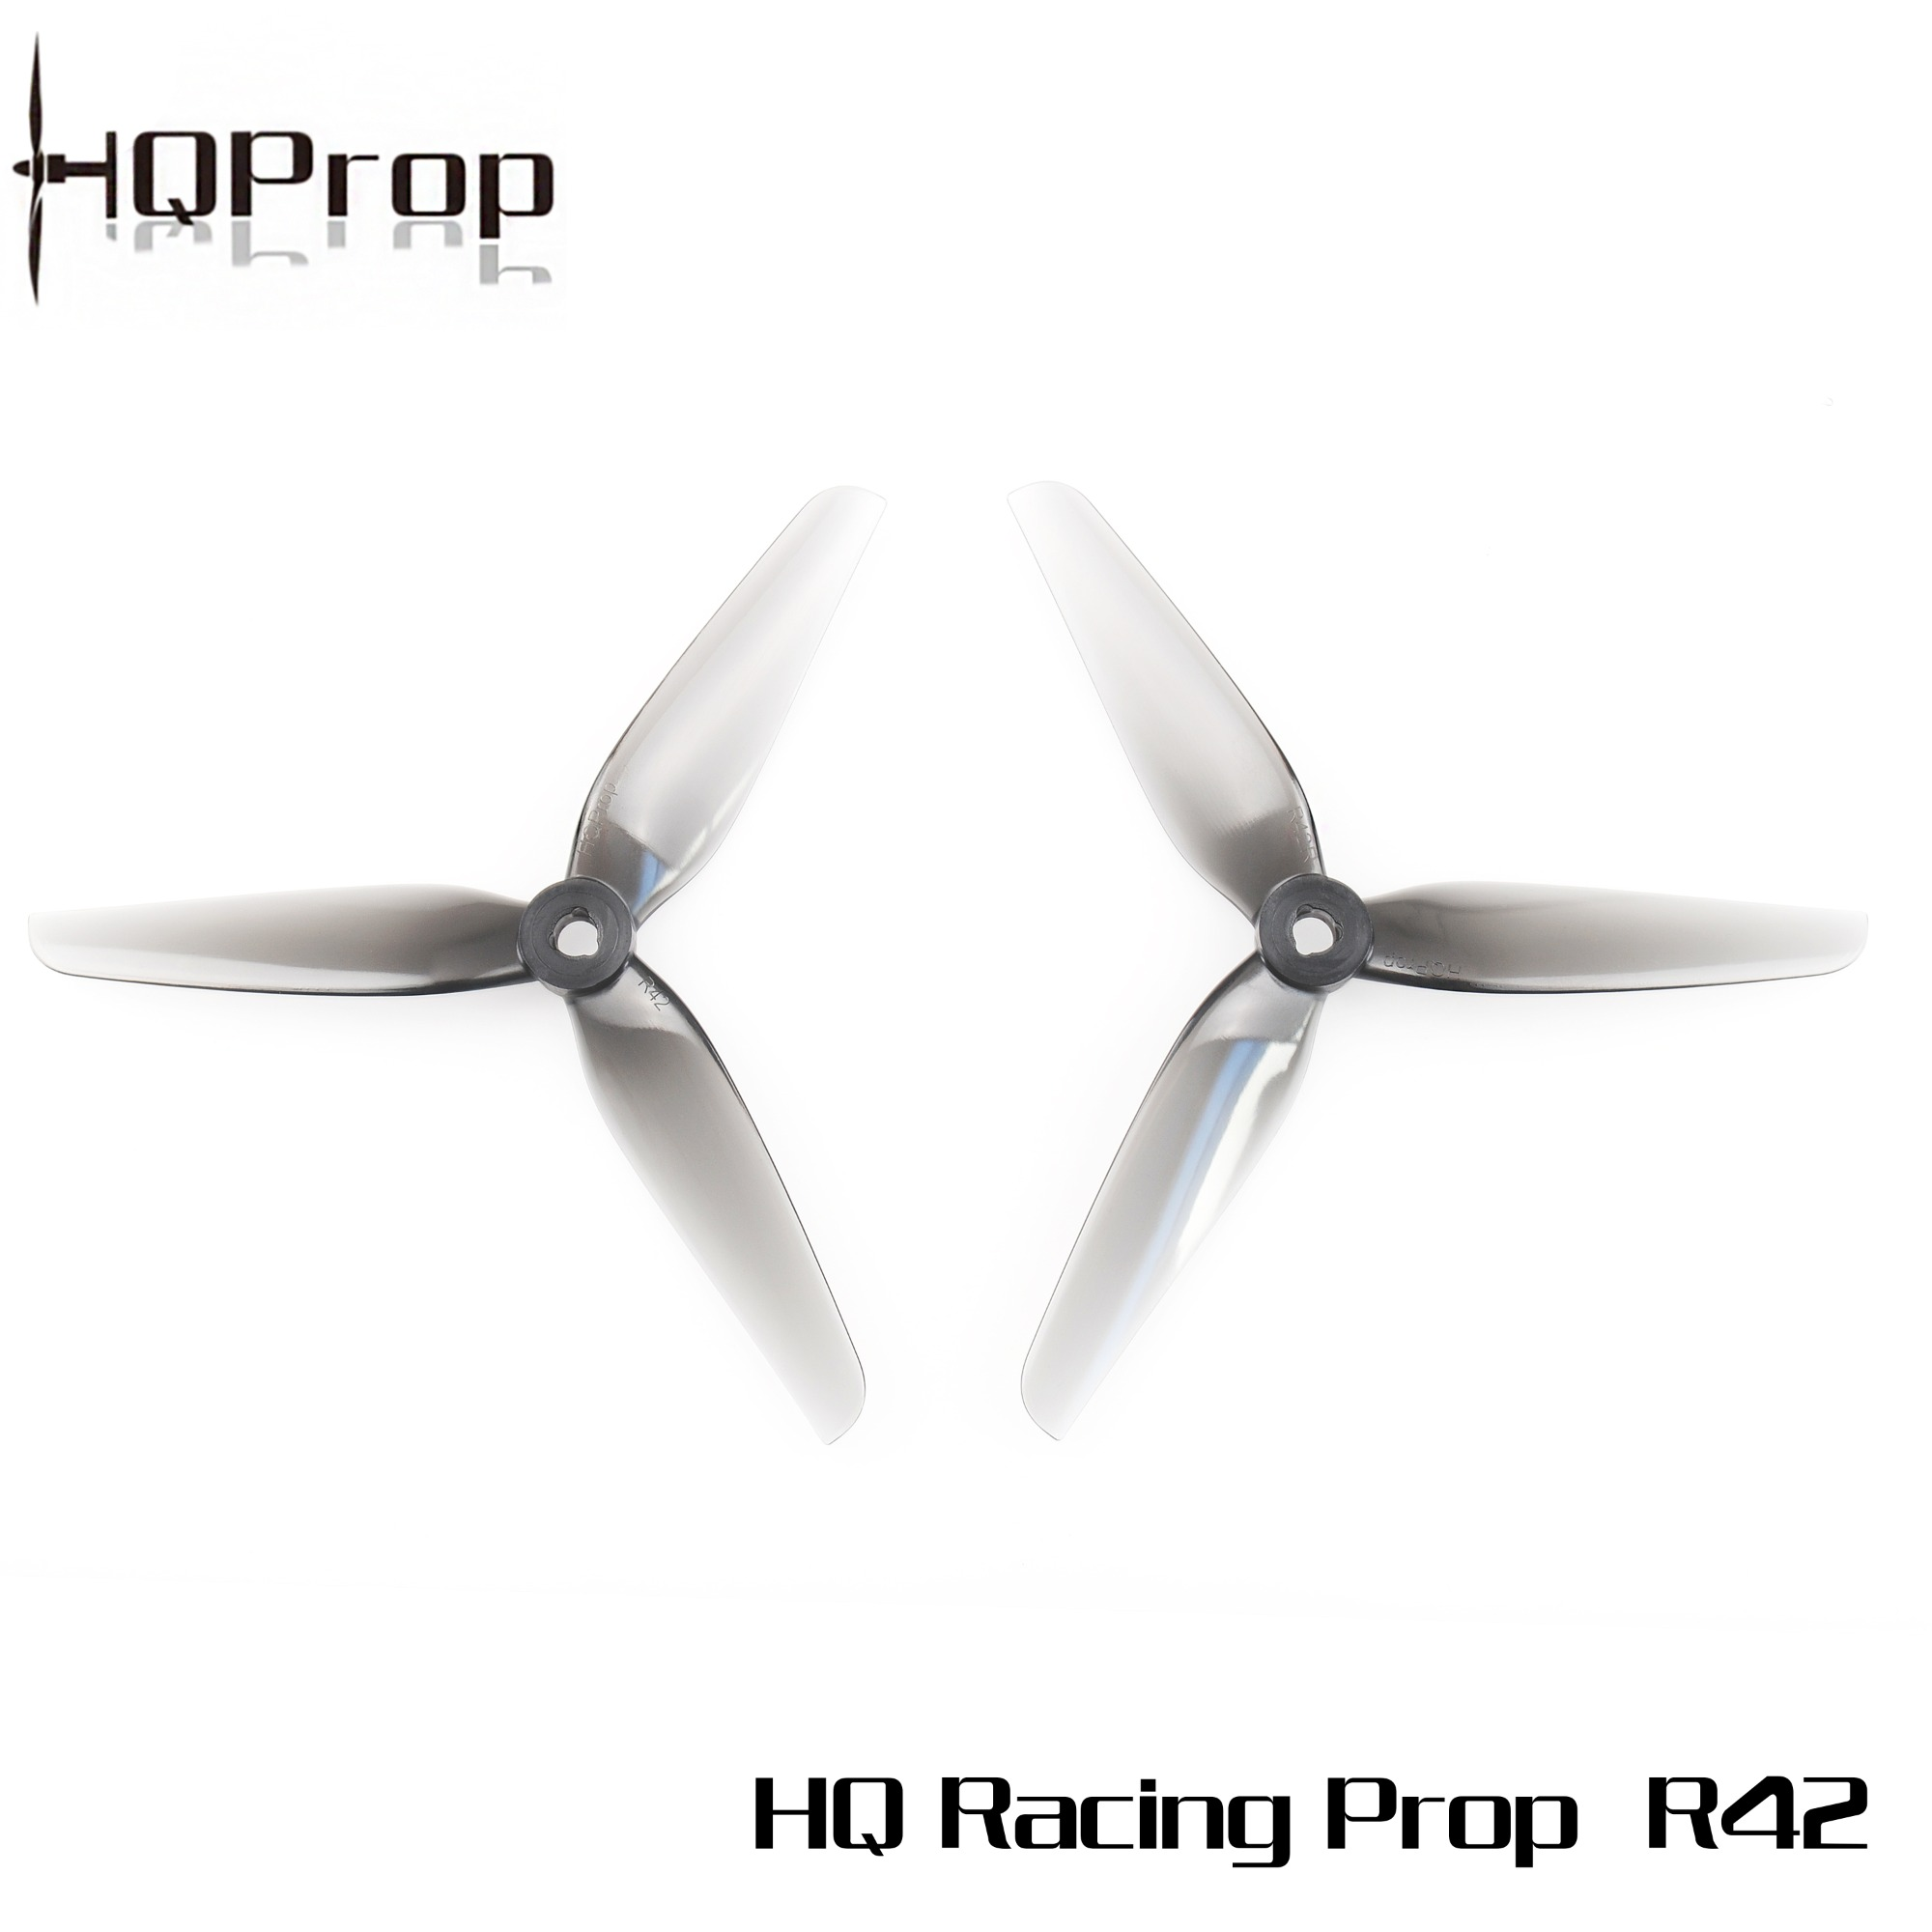 HQ Racing Prop <b>R42 Light Grey</b> (2CW+2CCW)